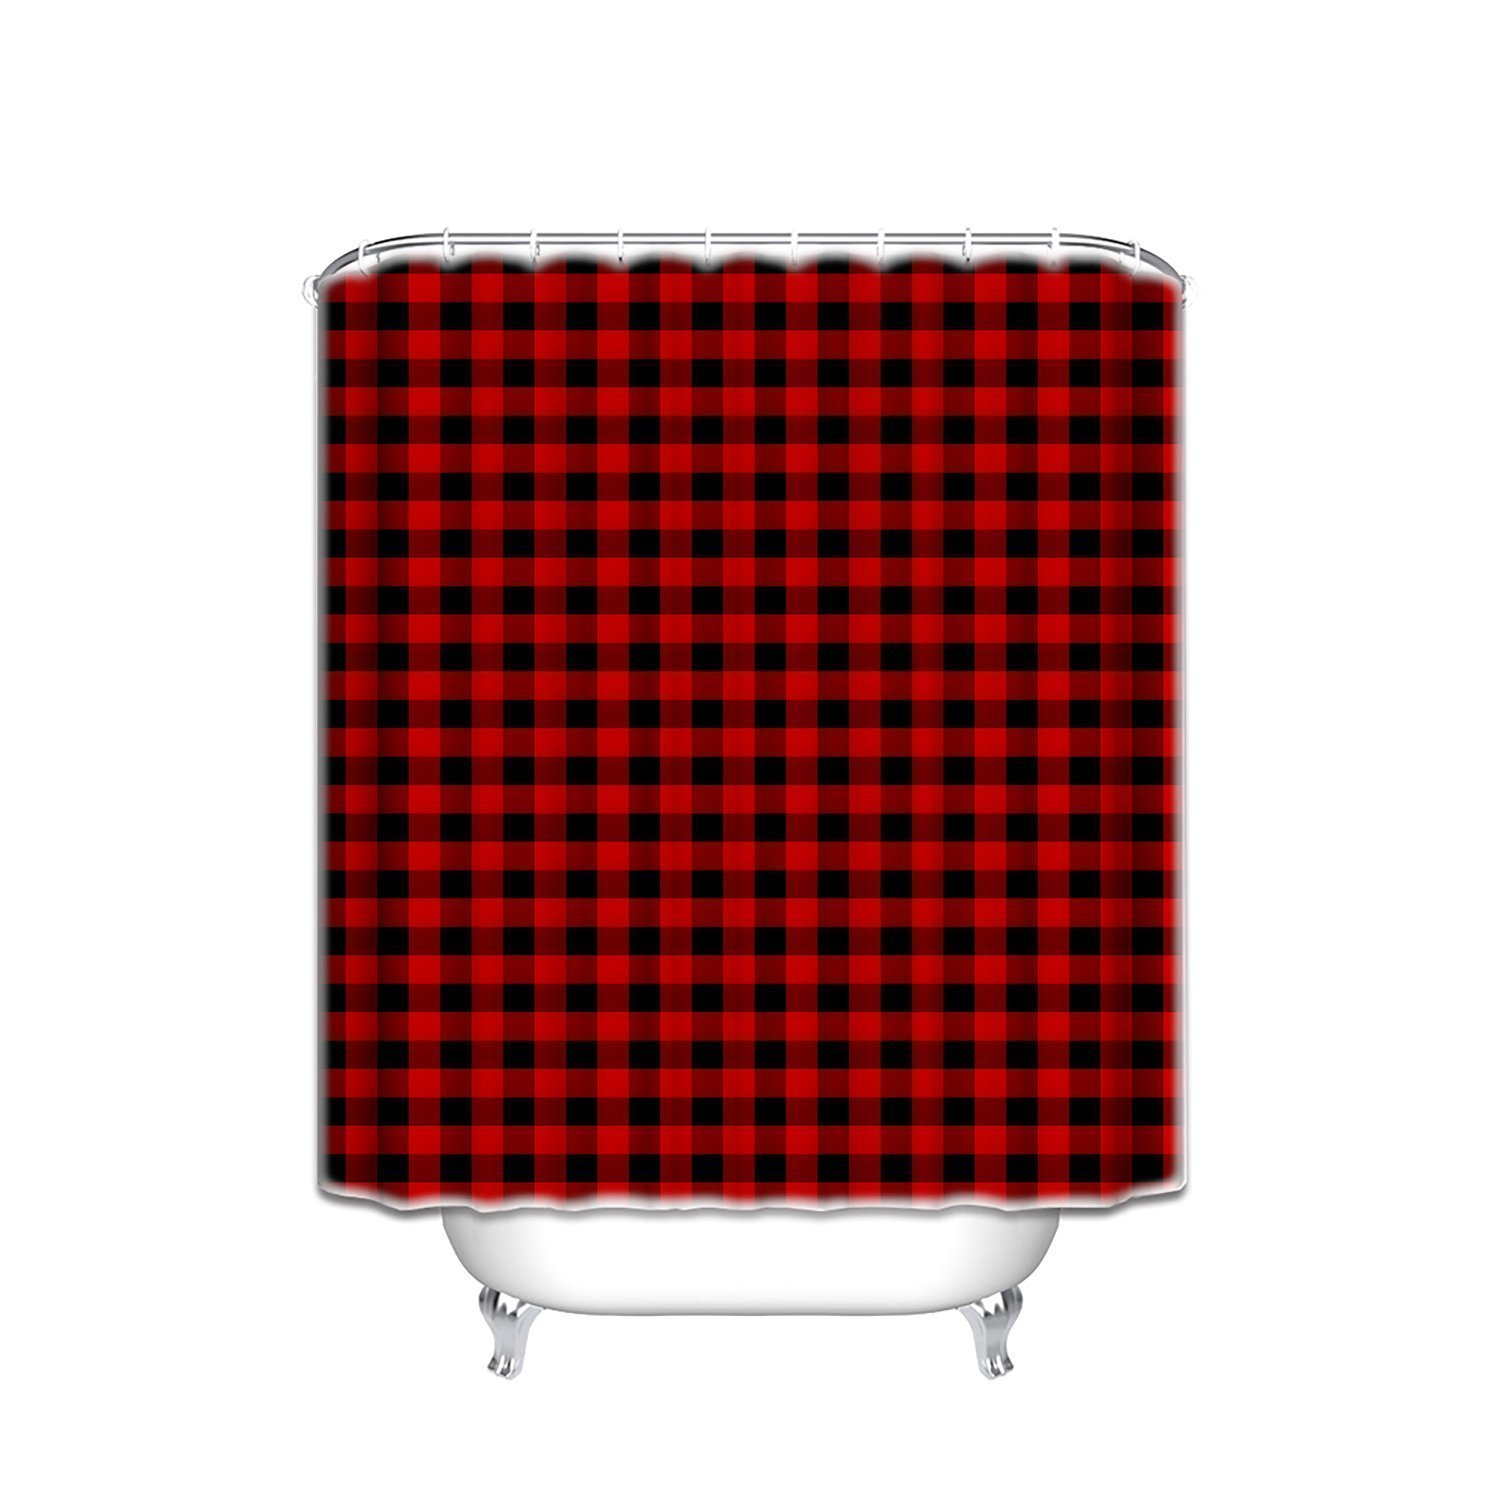 Red And Black Shower Curtain Set Us 16 81 37 Off Rustic Red Black Buffalo Check Plaid Pattern Waterproof Polyester Fabric Bathroom Shower Curtain Set With Hooks Shower Curtains In